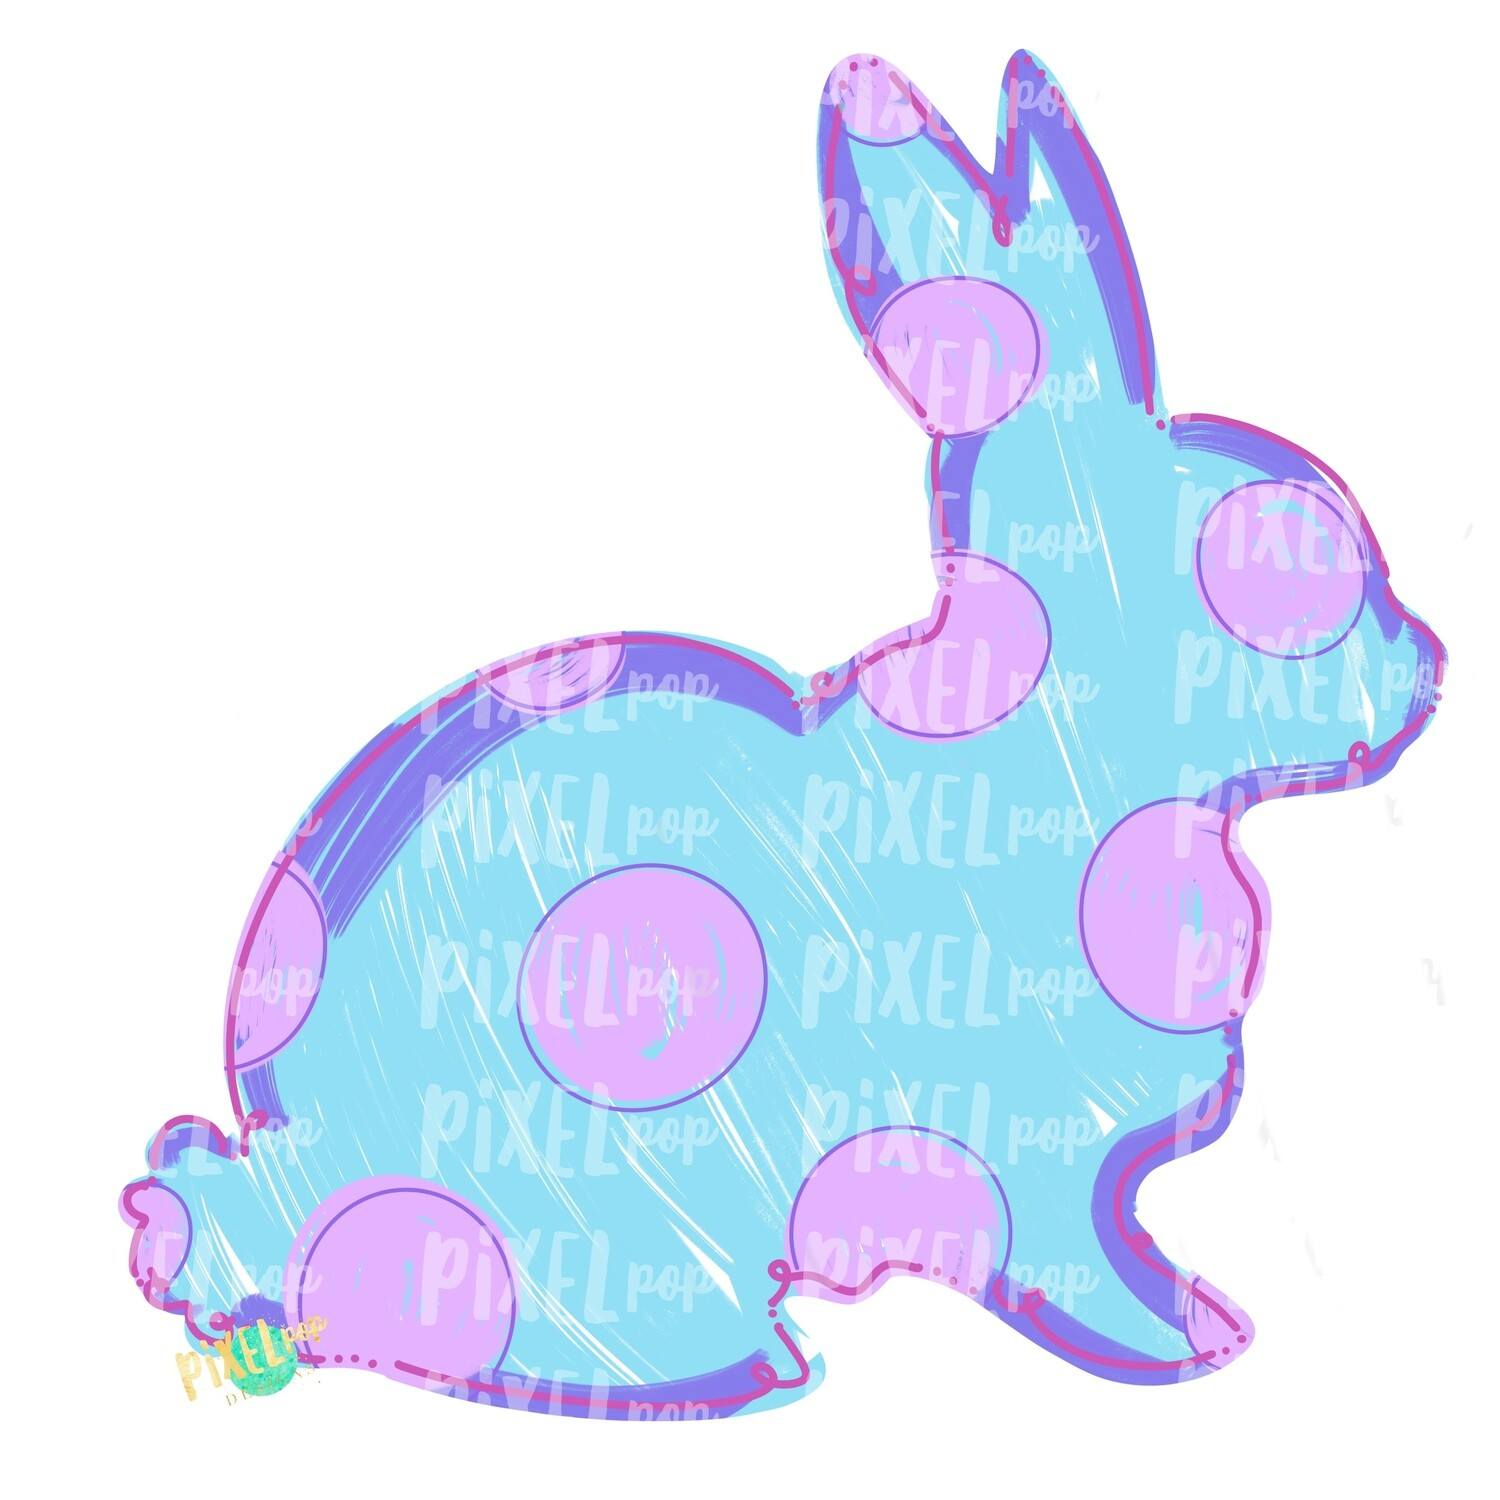 Bunny Polka Dot Silhouette BLUE Sublimation Design PNG | Easter Art | Heat Transfer PNG | Digital Download | Printable Artwork | Digital Art